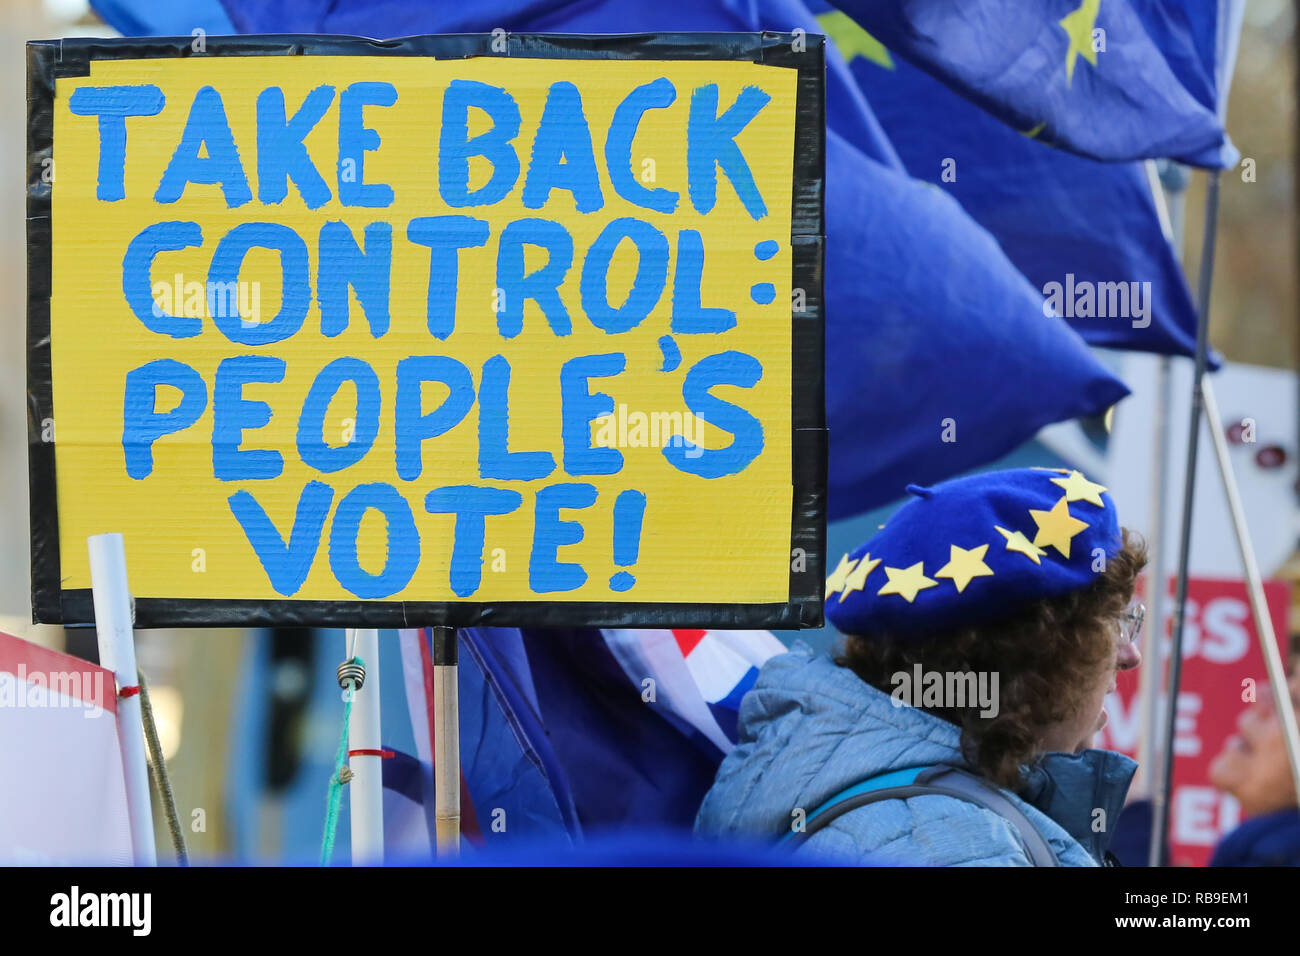 London, UK. 8th Jan, 2019. A placard saying take back control peoples vote seen during the protest.Anti Brexit demonstrators gather outside the British Parliament a week before the MPs to vote on the finalized Brexit deal, MPs will vote on Theresa May's Brexit deal on Tuesday, 15 January. Credit: Dinendra Haria/SOPA Images/ZUMA Wire/Alamy Live News - Stock Image